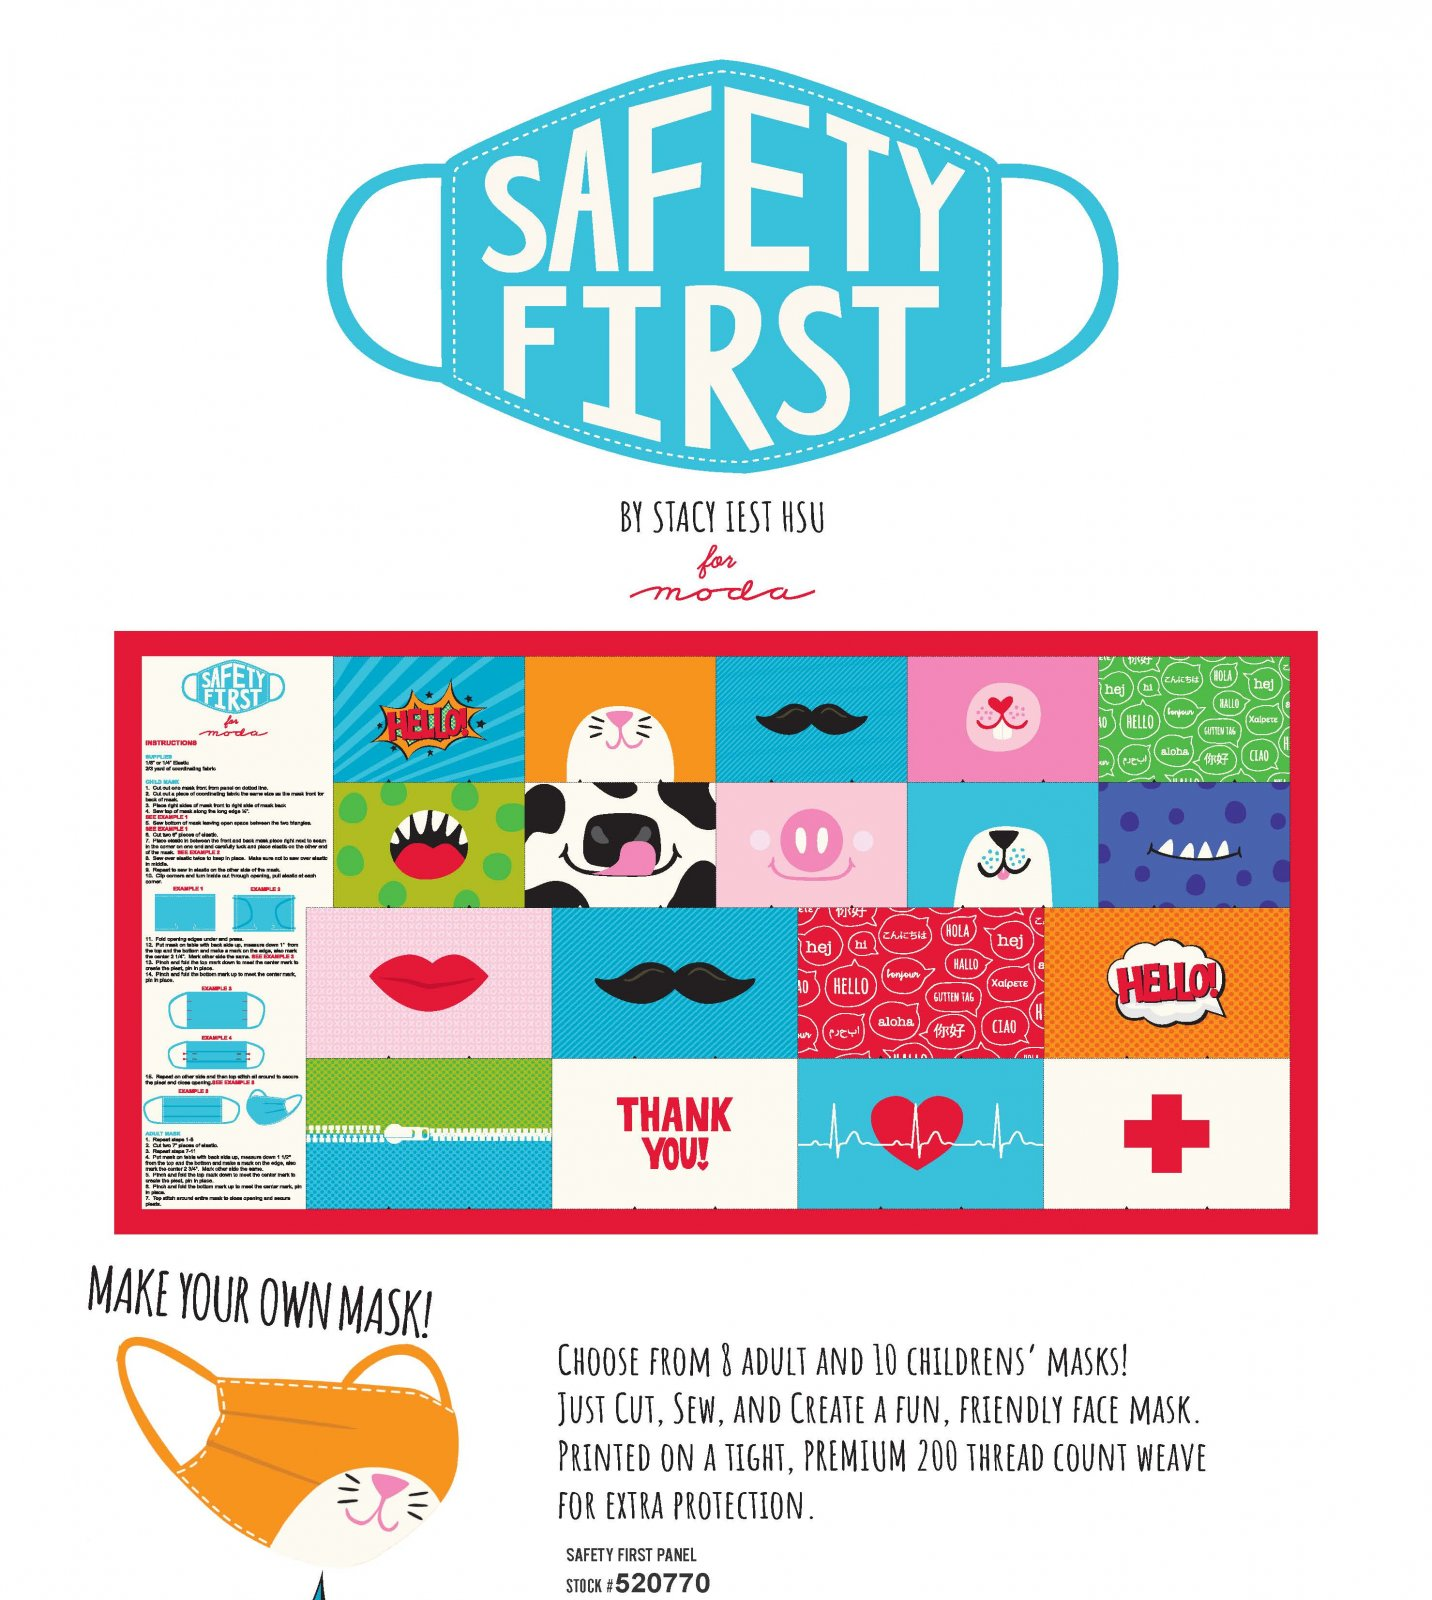 Safety First - Mask Panel from Stacy Iest Hsu